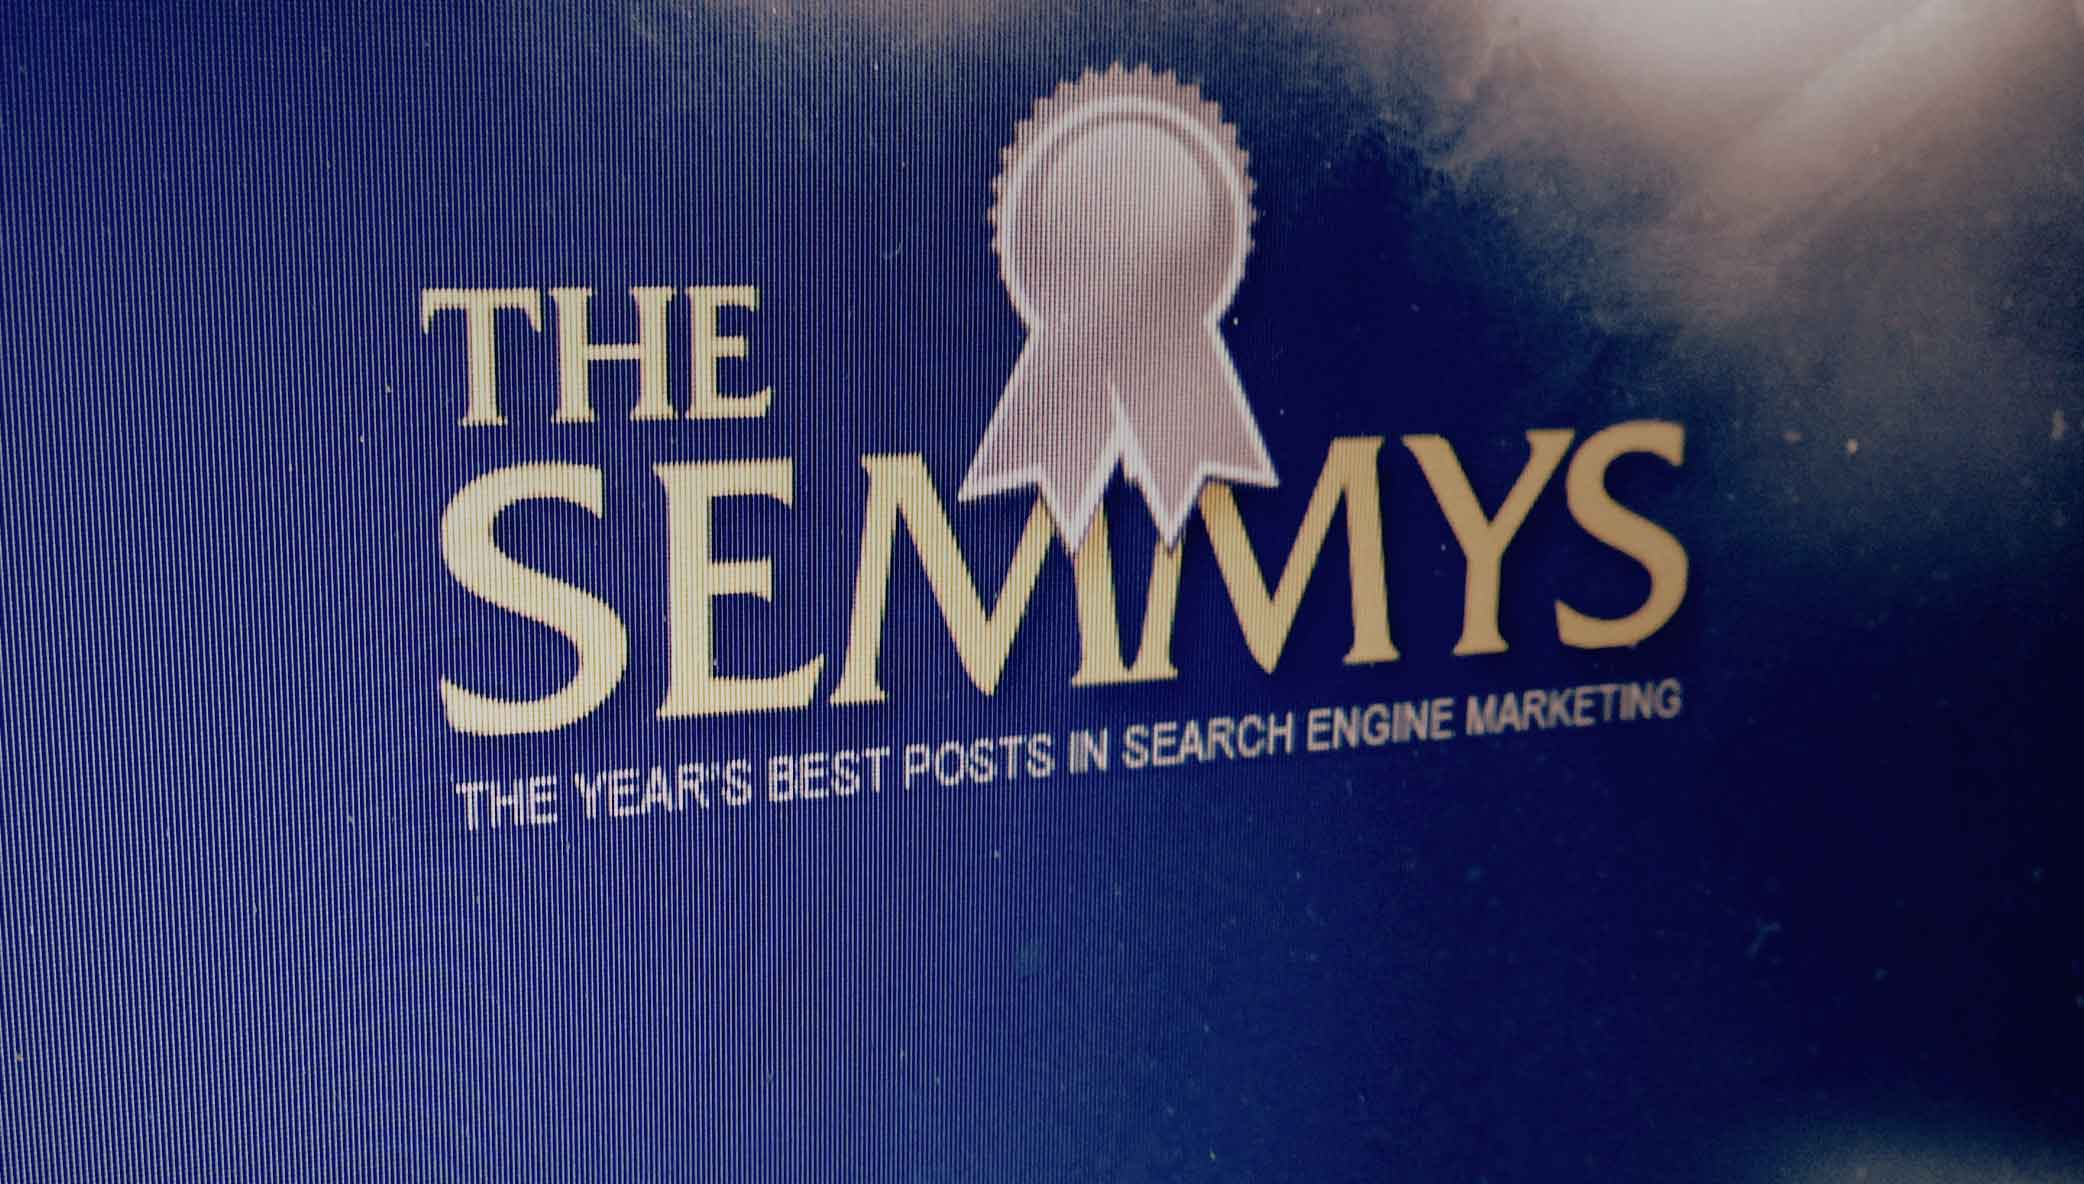 Stone Blog Post Nominated for a SEMMY Award